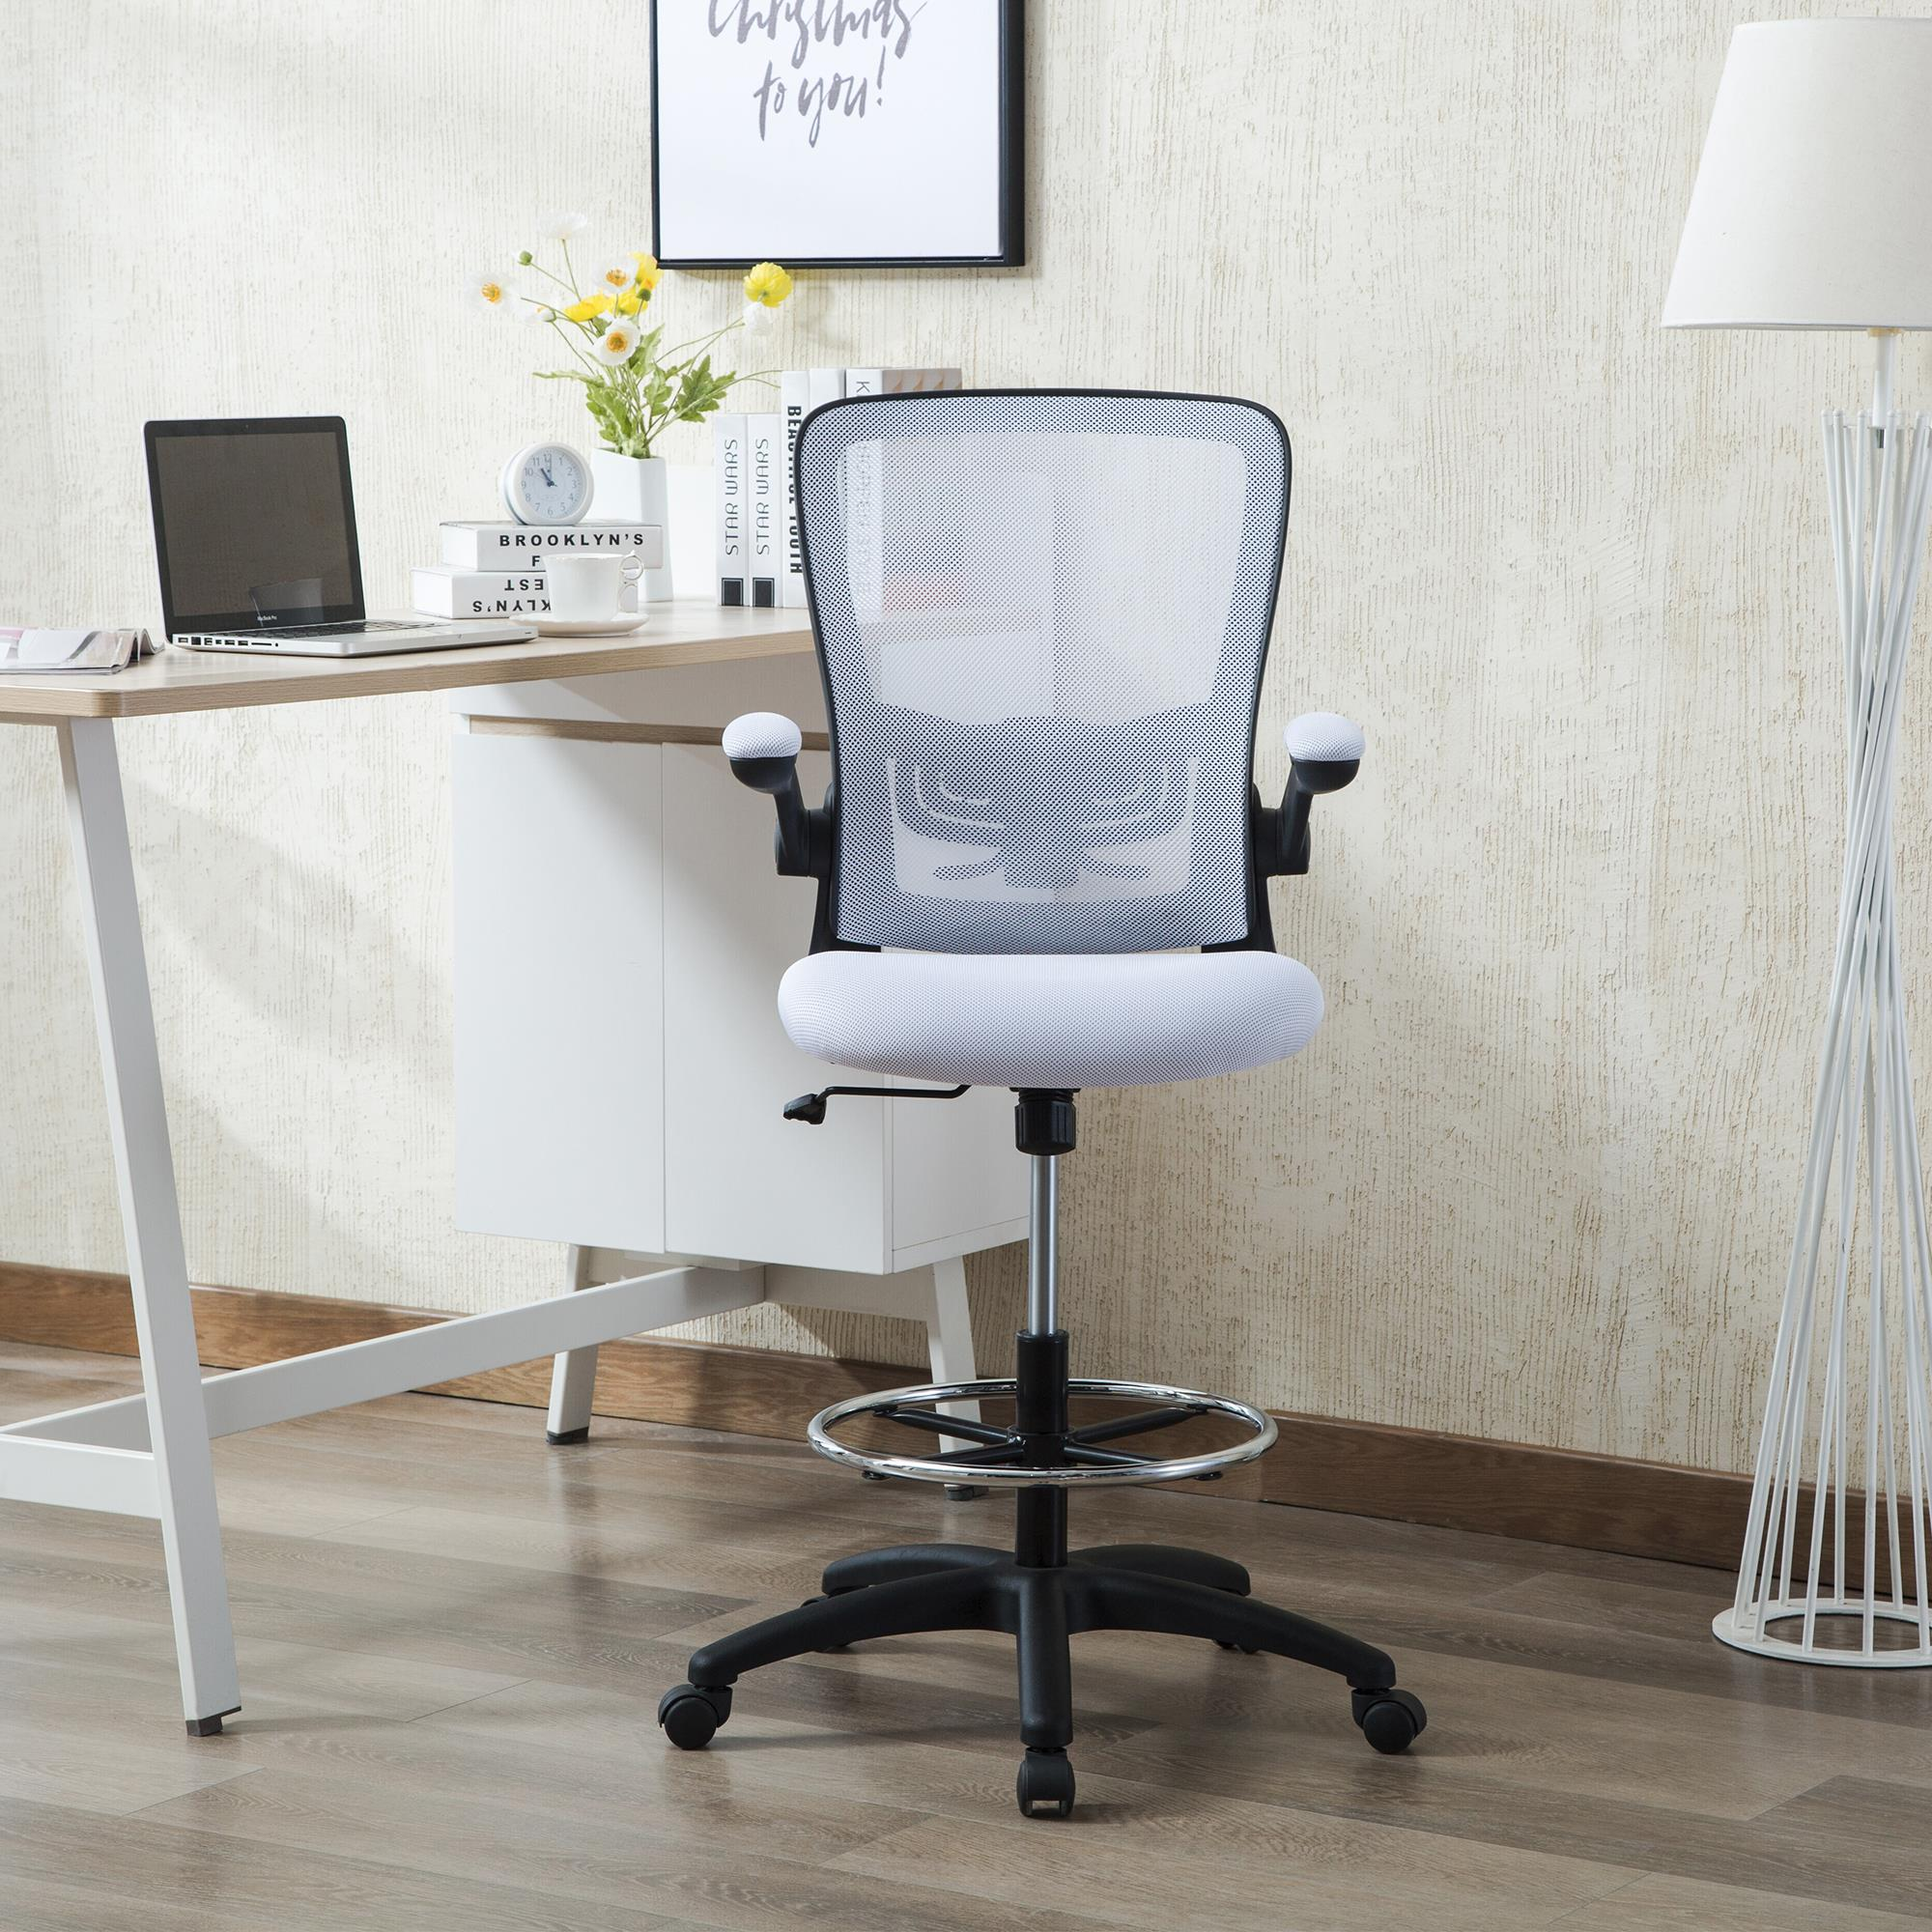 Serena Mesh Drafting Chair Tall Office Chair For Standing Desk By Naomi Home Base Color Black Color White Walmart Com Walmart Com